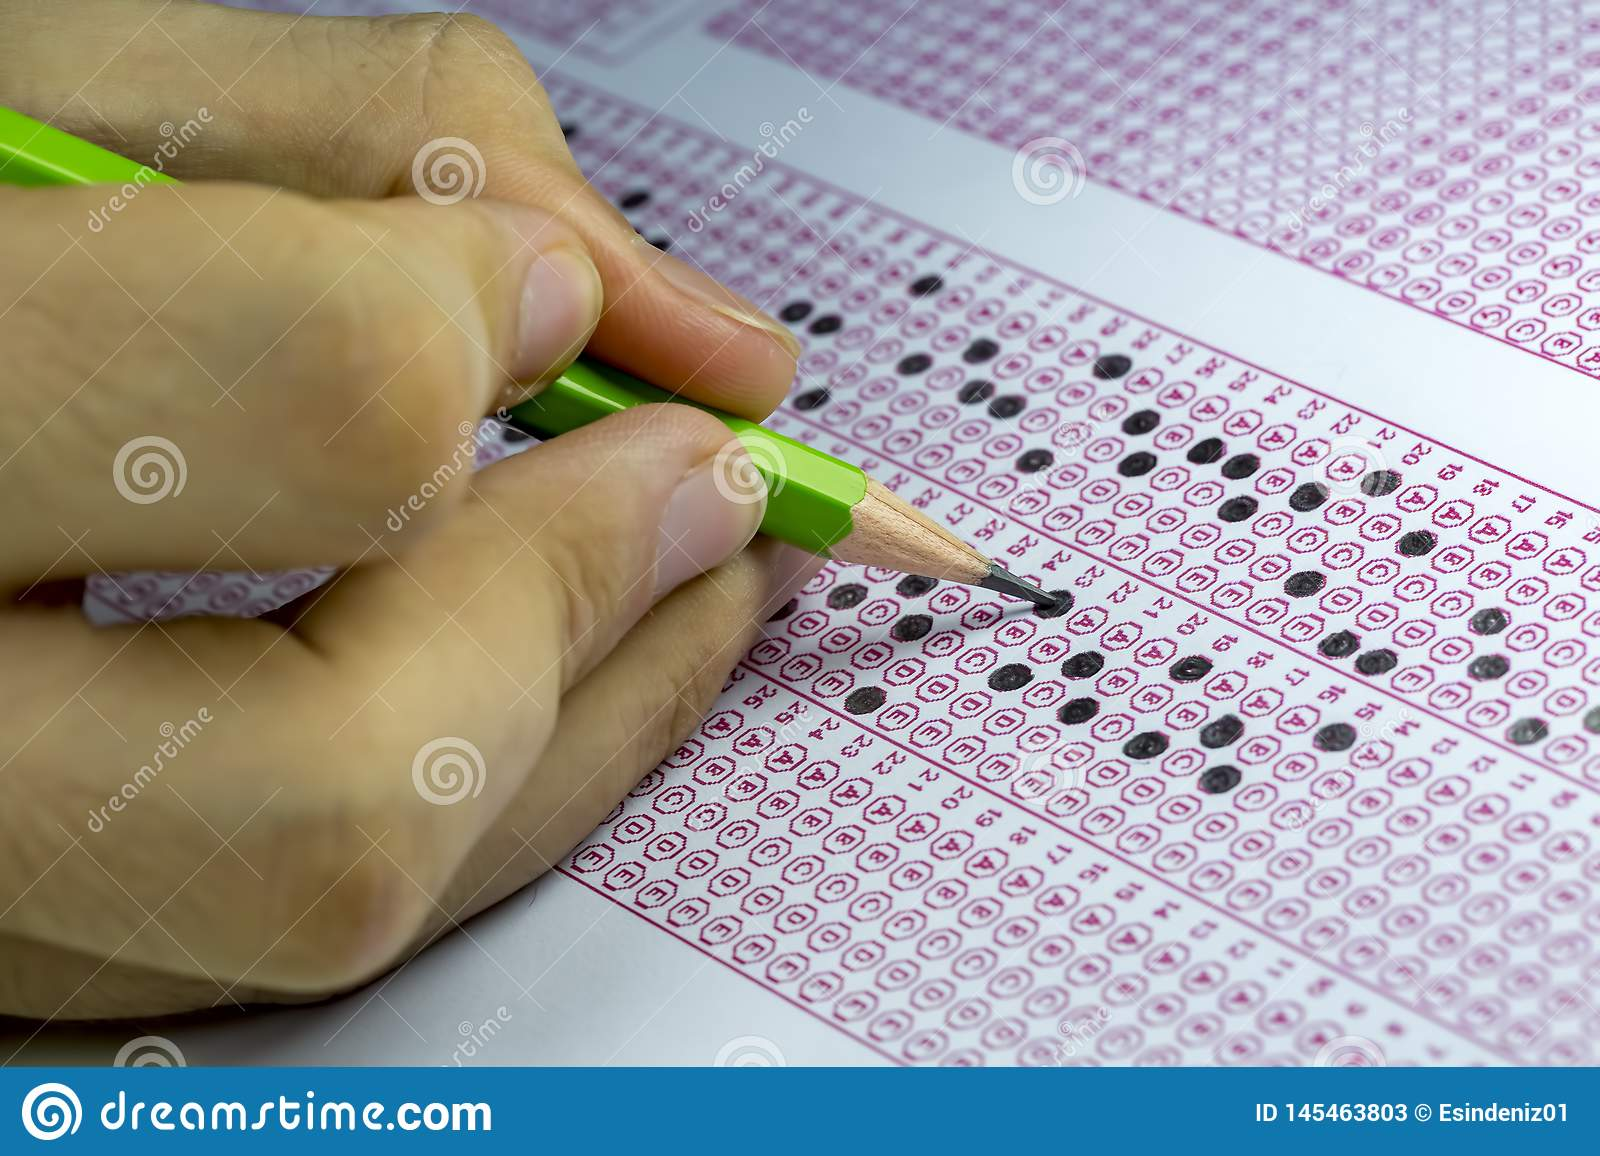 Students taking exams, writing examination room with holding pencil on optical form of standardized test with answers paper